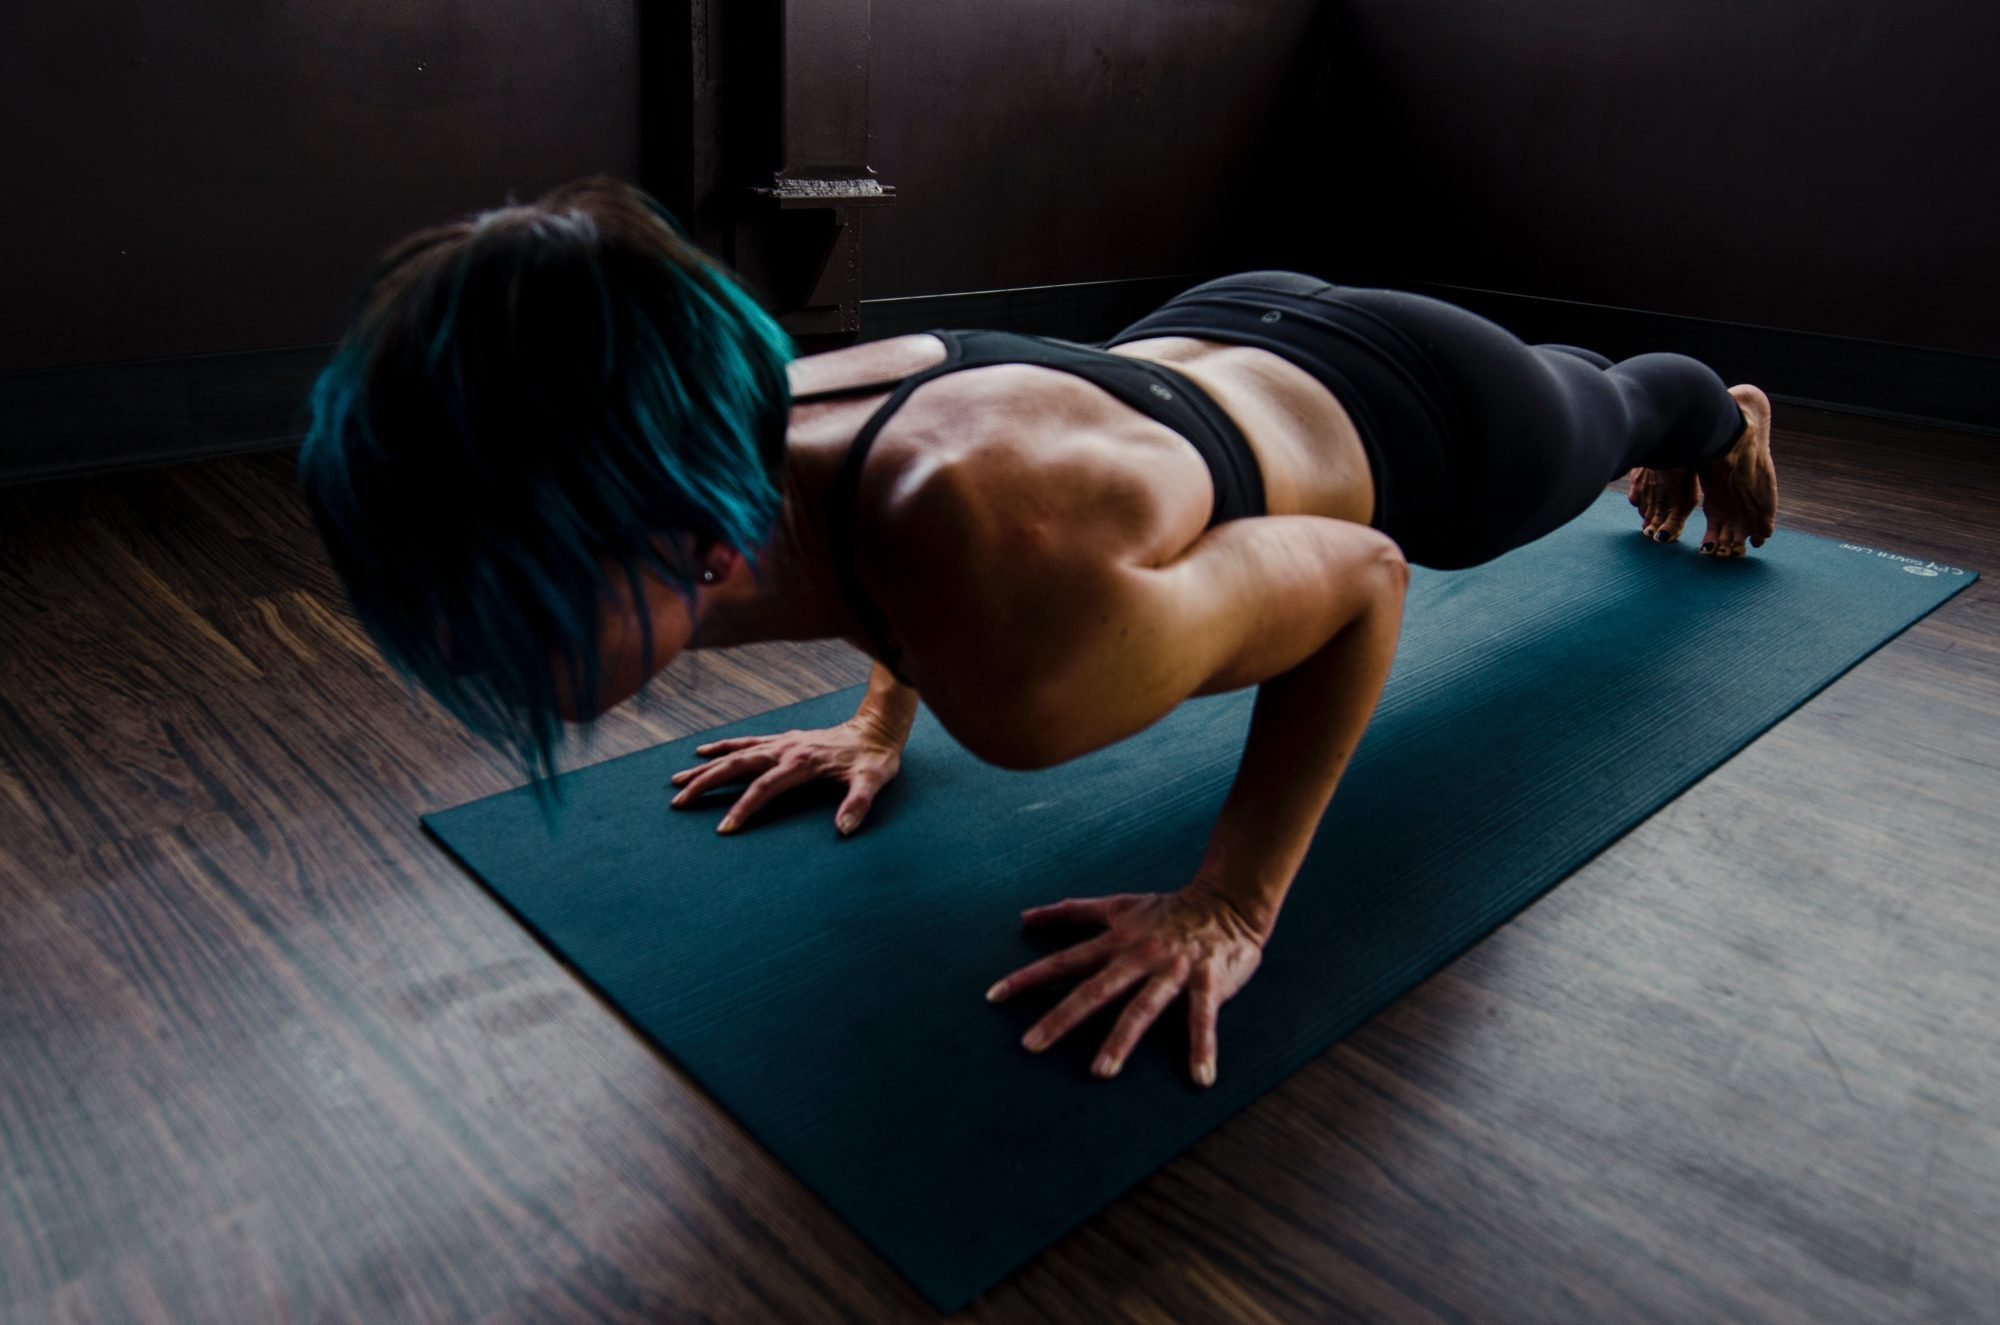 Common Home Workout Mistakes To Avoid